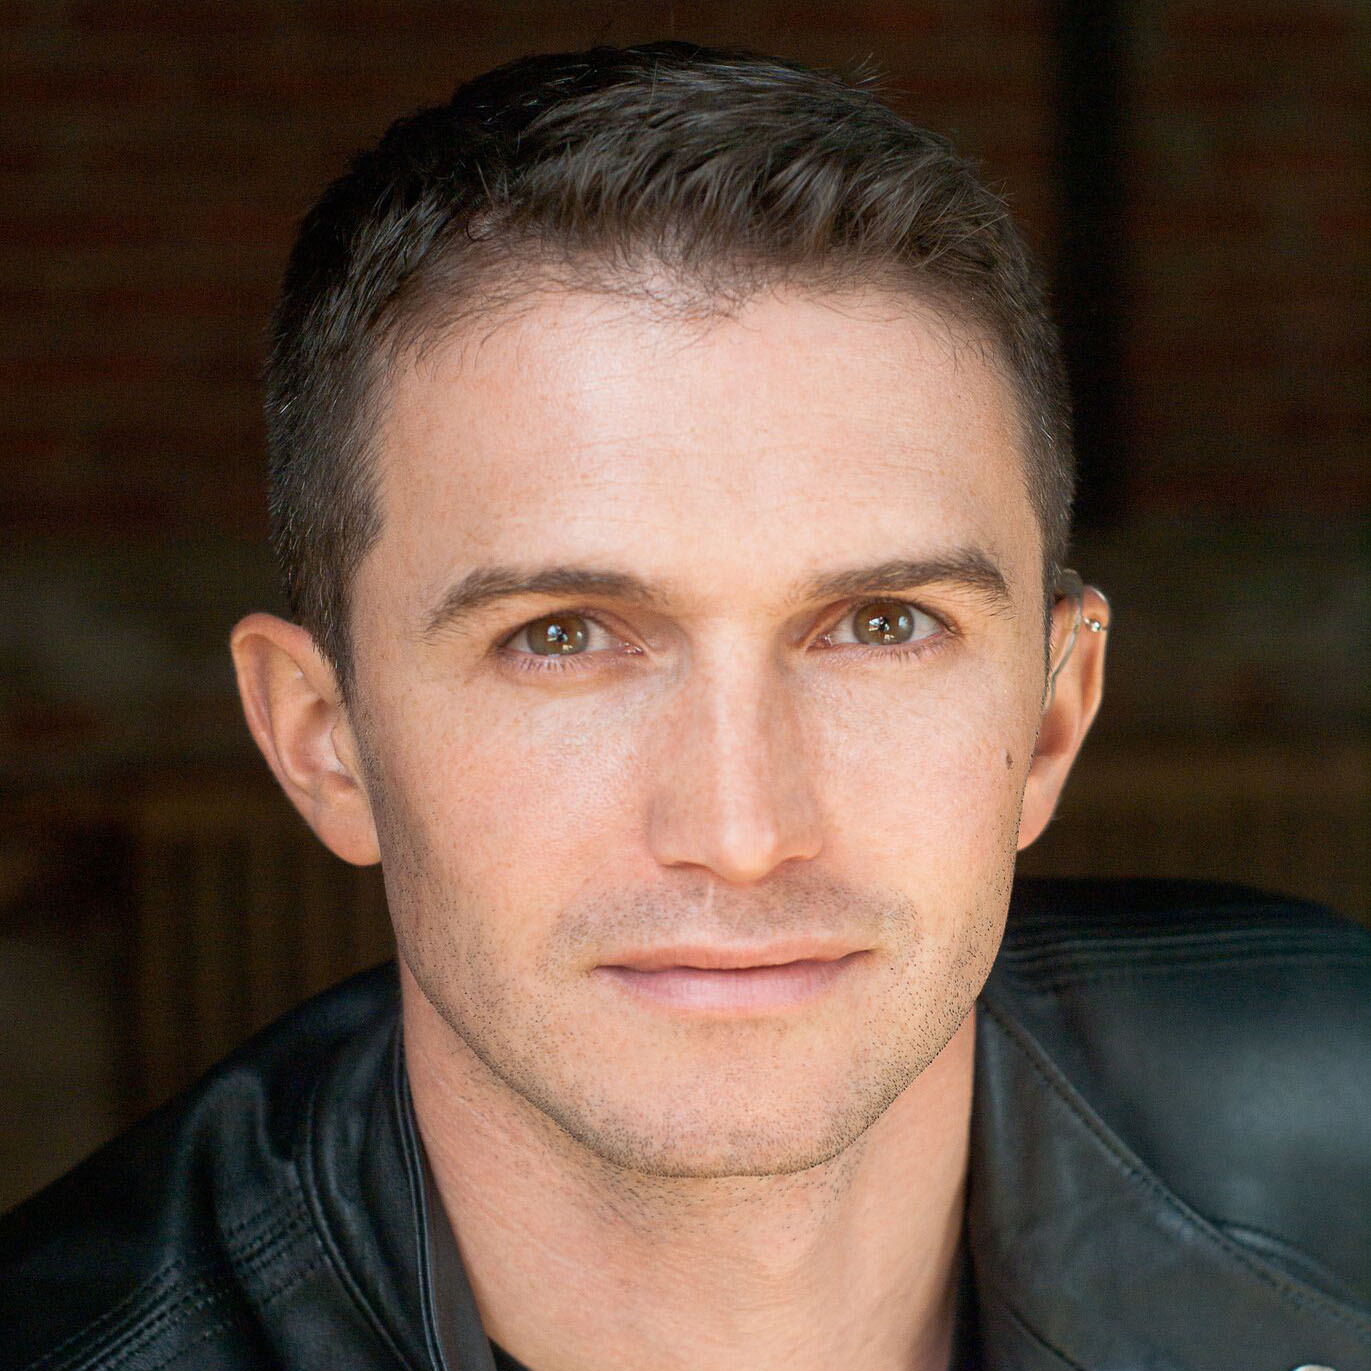 A white-presenting male with short brown hair, a soft smile and sharp green/brown eyes, wearing a leather jacket.